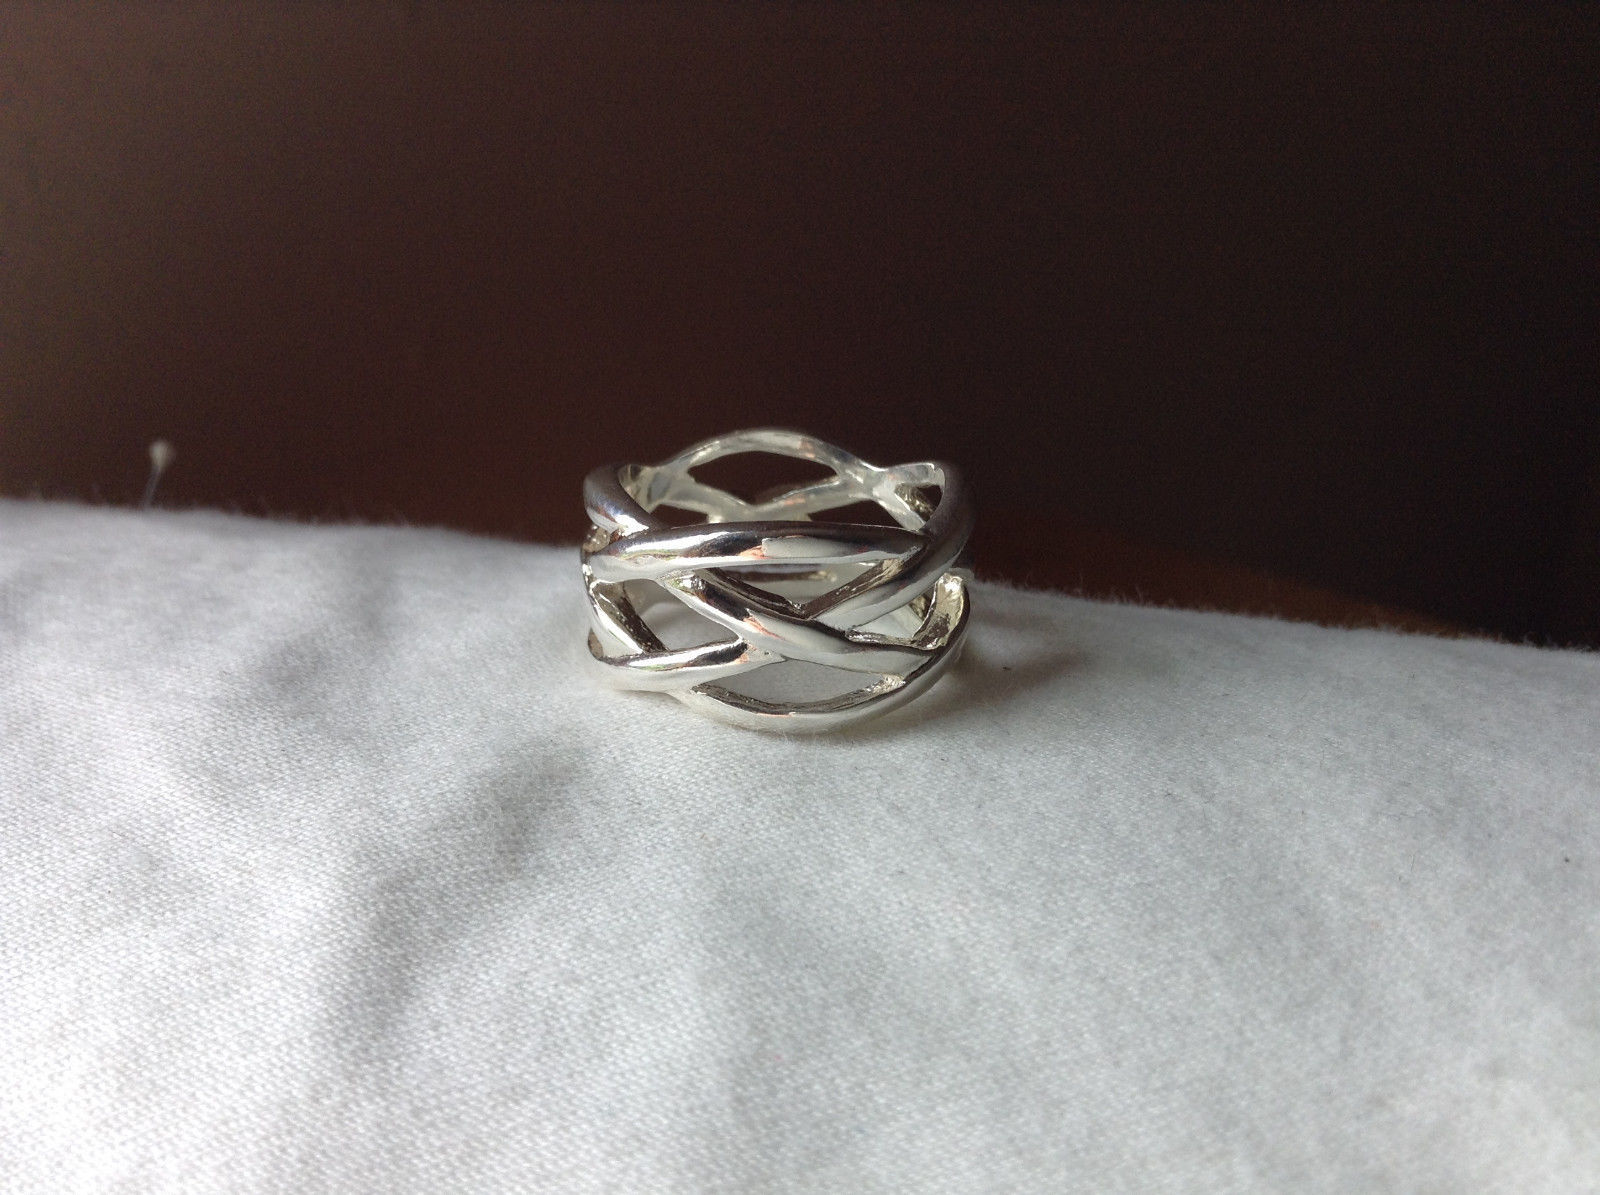 Wide Braided Bands Silver plated  Ring Size 8.5 and 8.75 Sold Separately